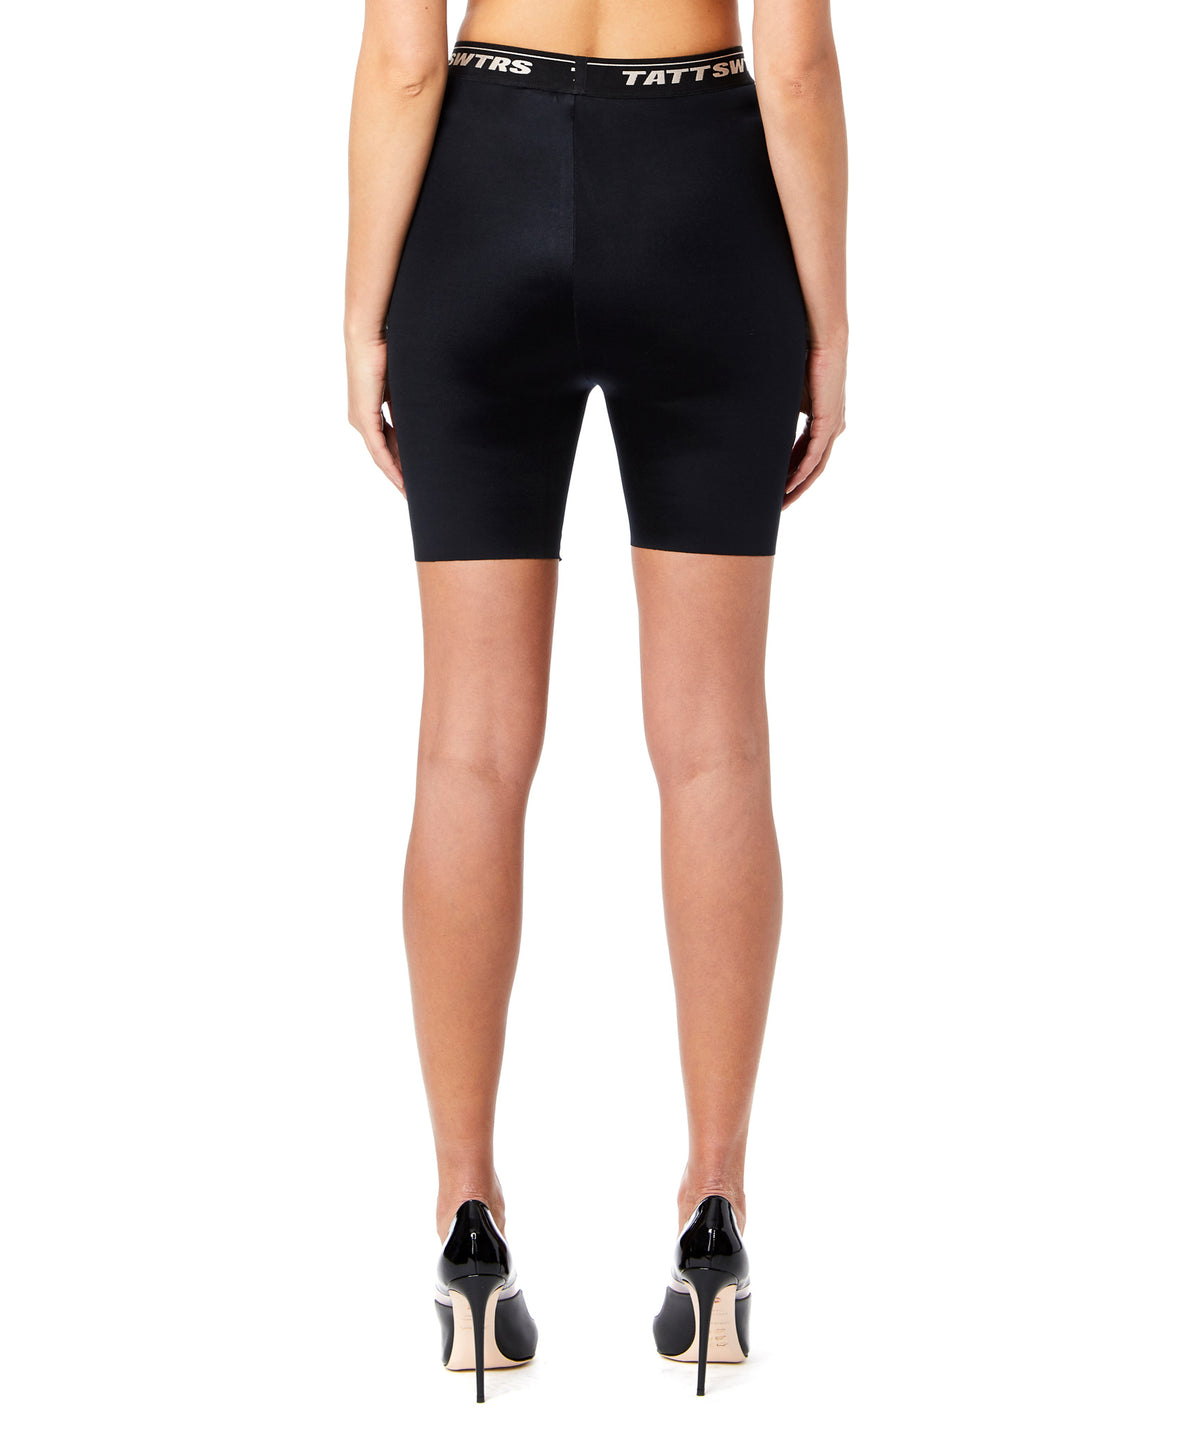 TTSWTRS Cycling pants Women Black Bike Shorts